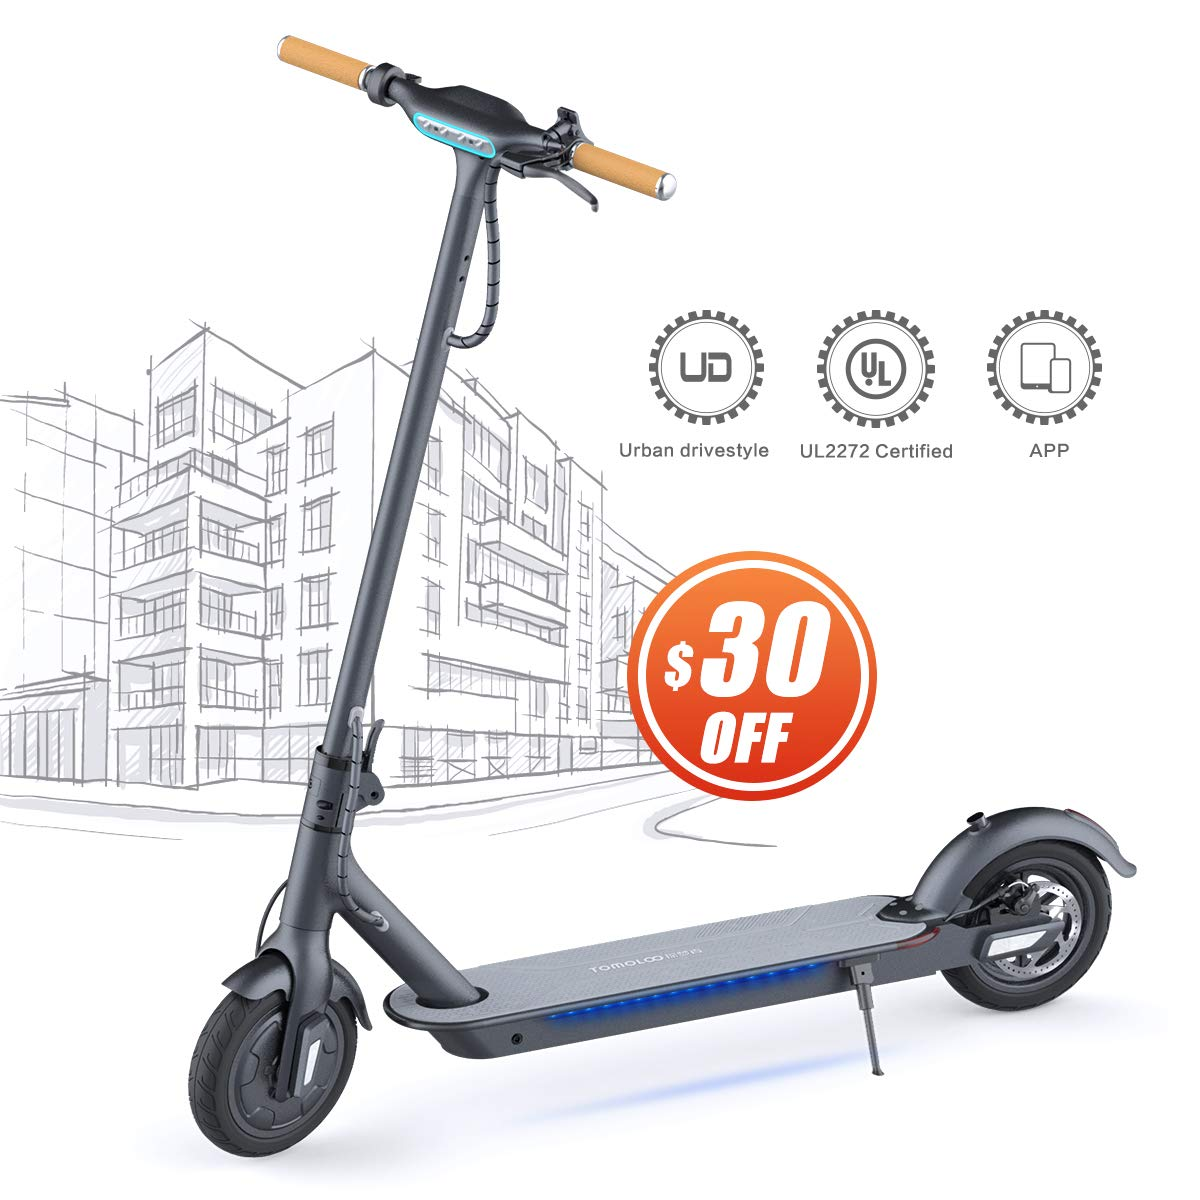 Amazon.com : TOMOLOO Electric Scooter for Adults, Self ...